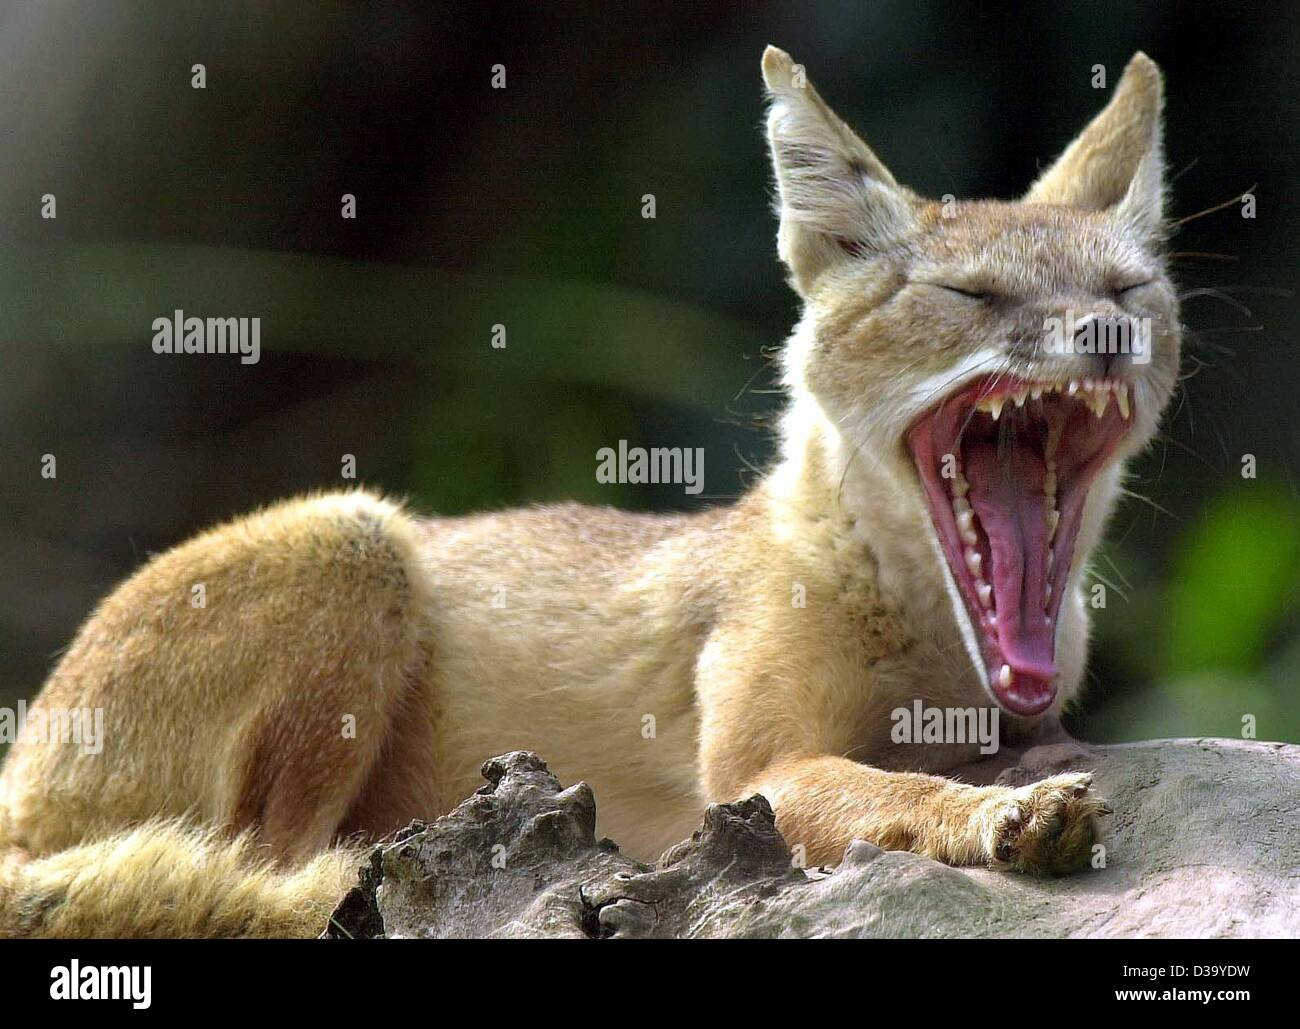 (dpa) - A little corsac, a prairie fox, is overcome by sleepiness and yawns at the Saarbruecken Zoo (filer of 2000). - Stock Image